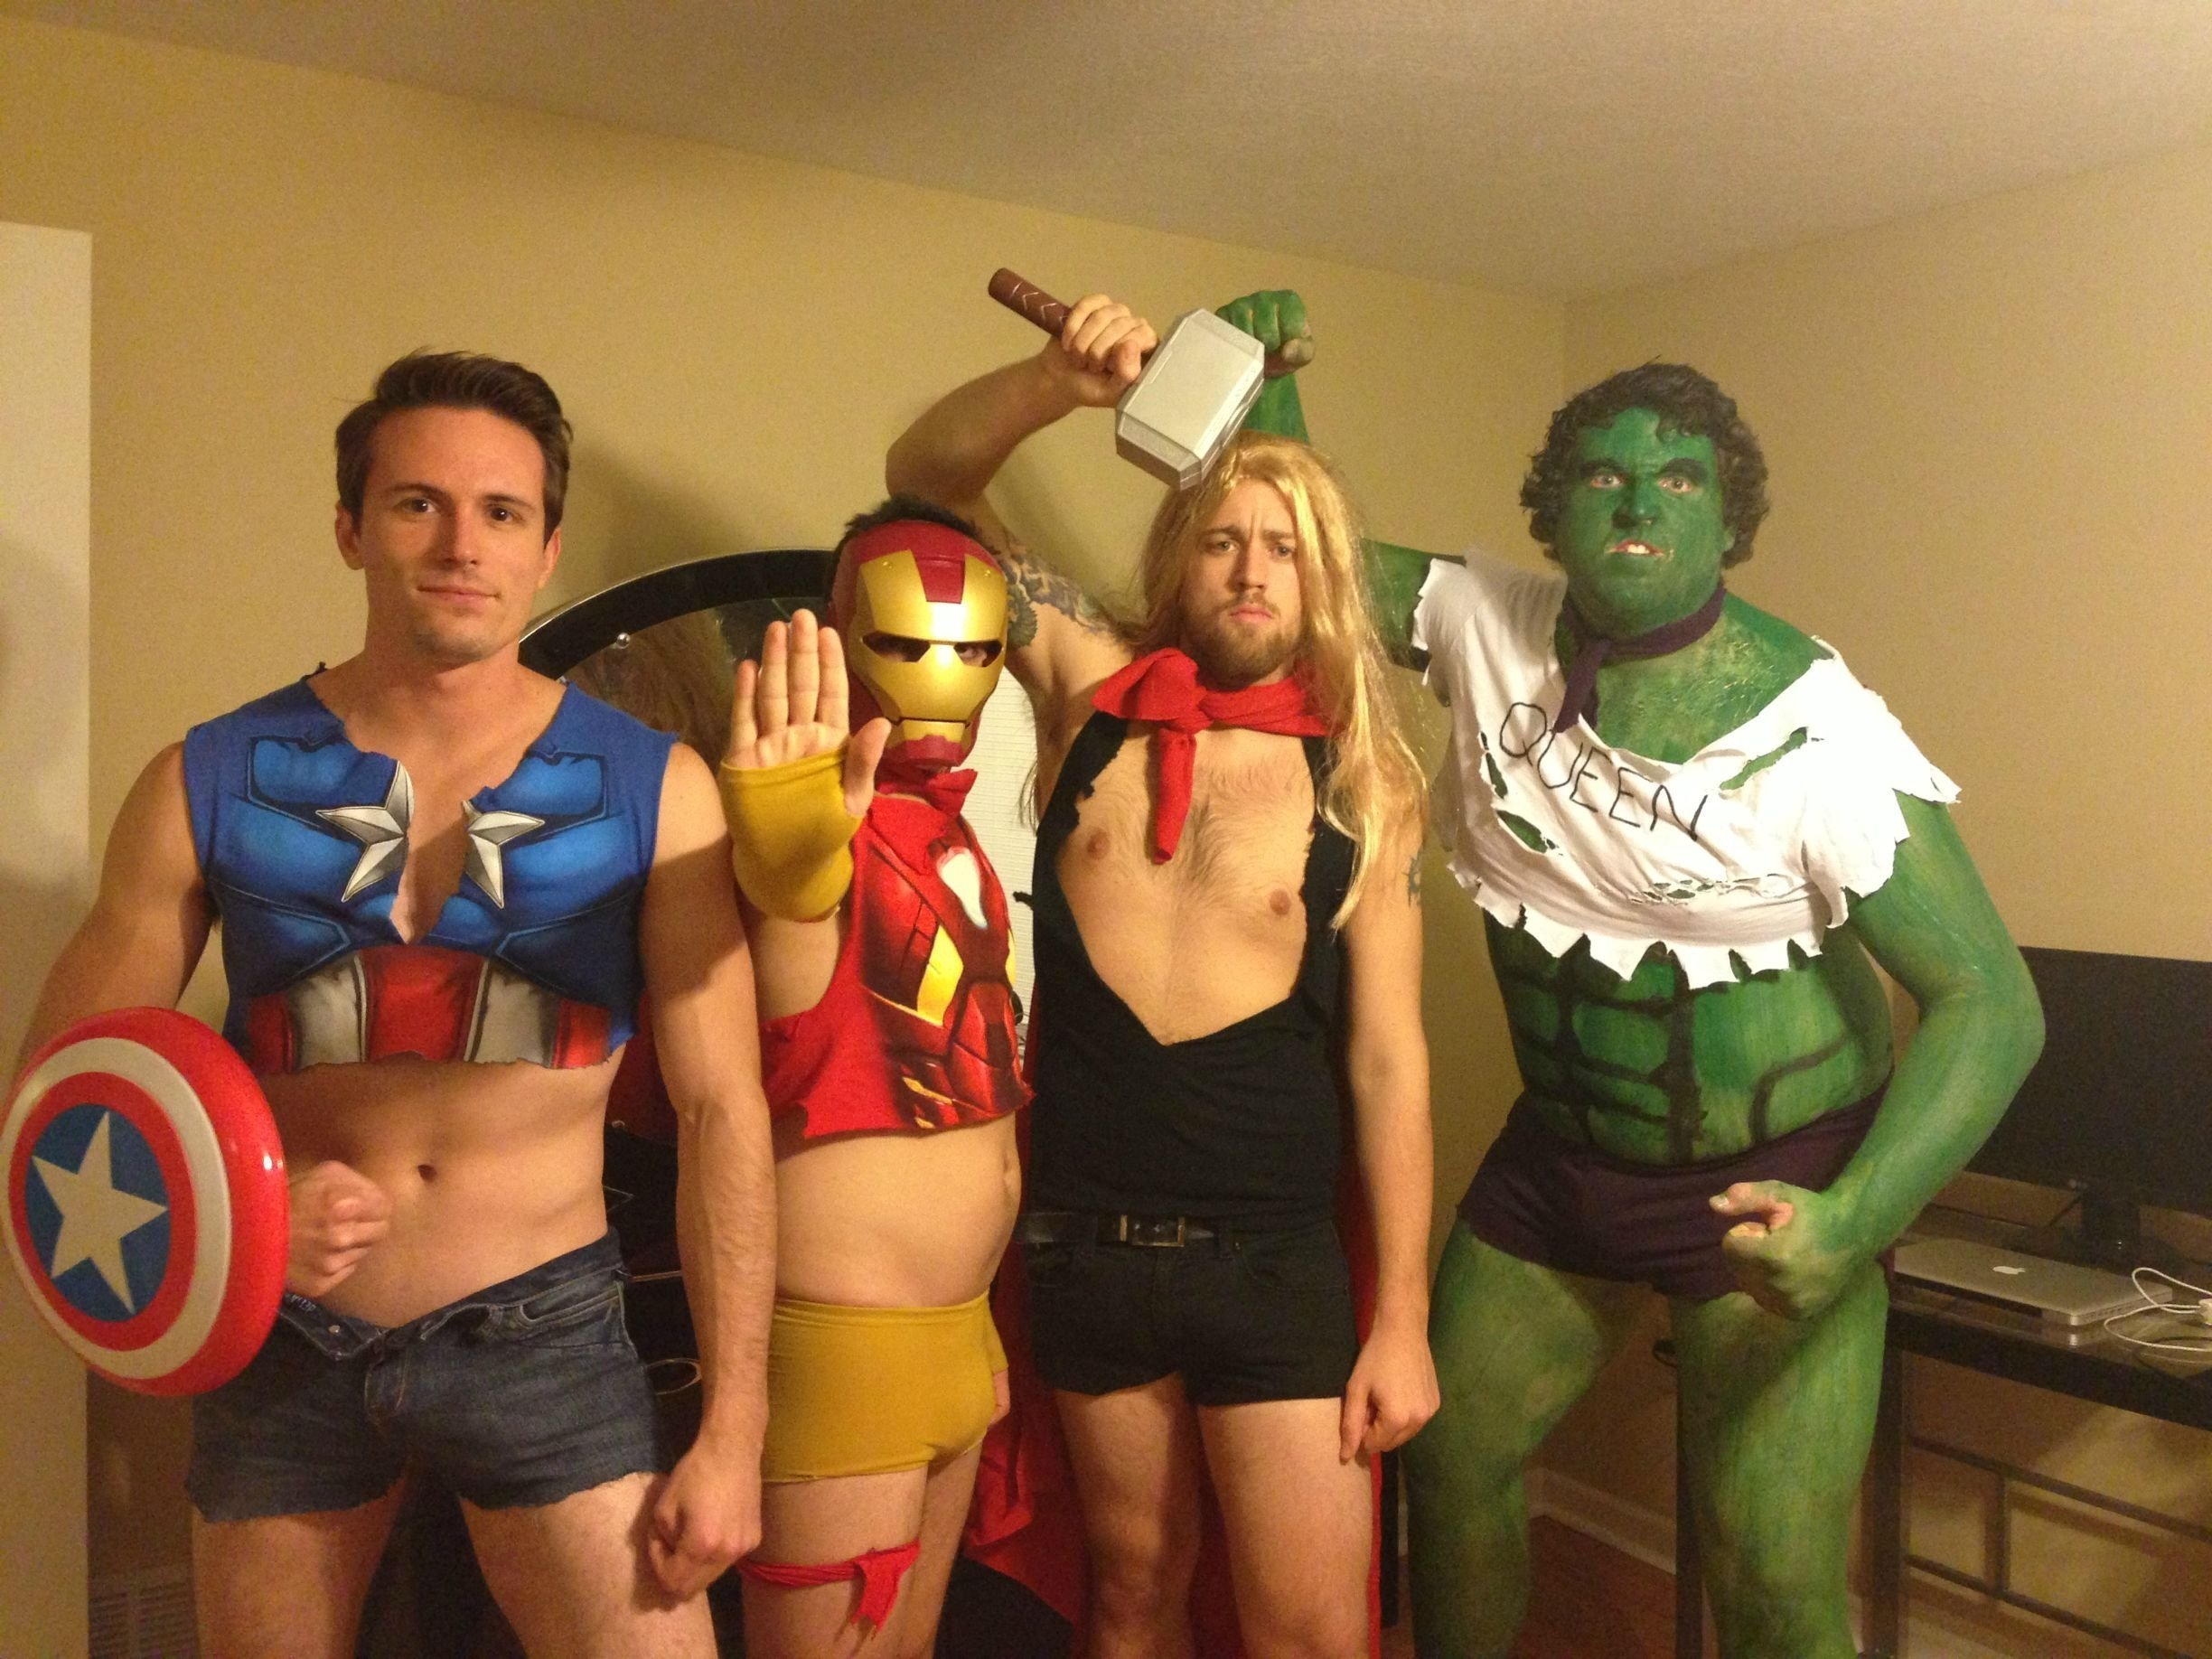 10 Nice Sexiest Male Halloween Costume Ideas my friends and i decided to go as sexy avengers for halloween 1 2020